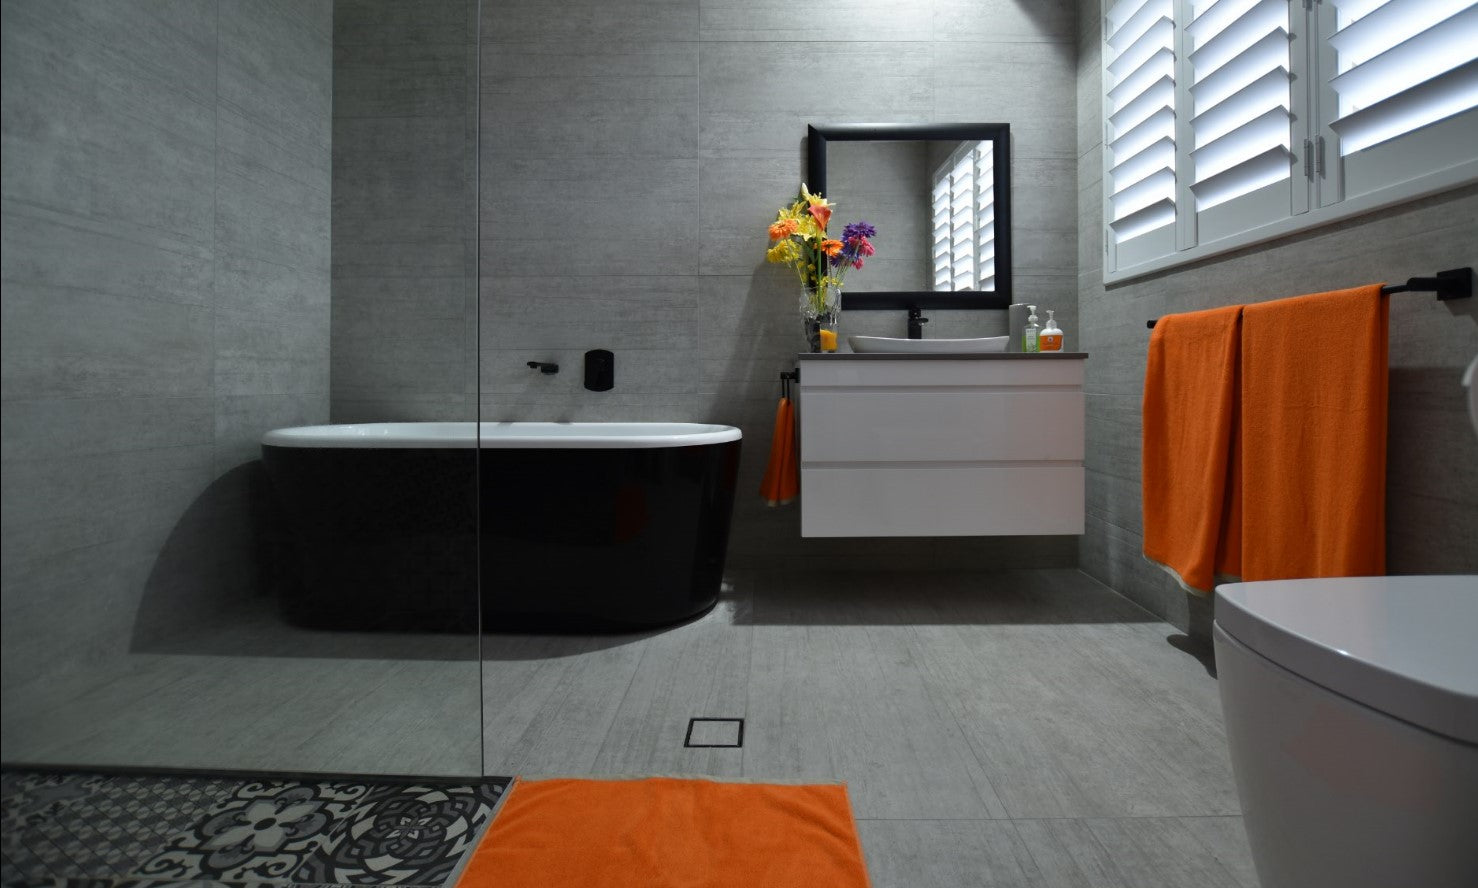 Bathroom uses large format tiles, wall hung vanity and a walk in shower for low maintenance cleaning design